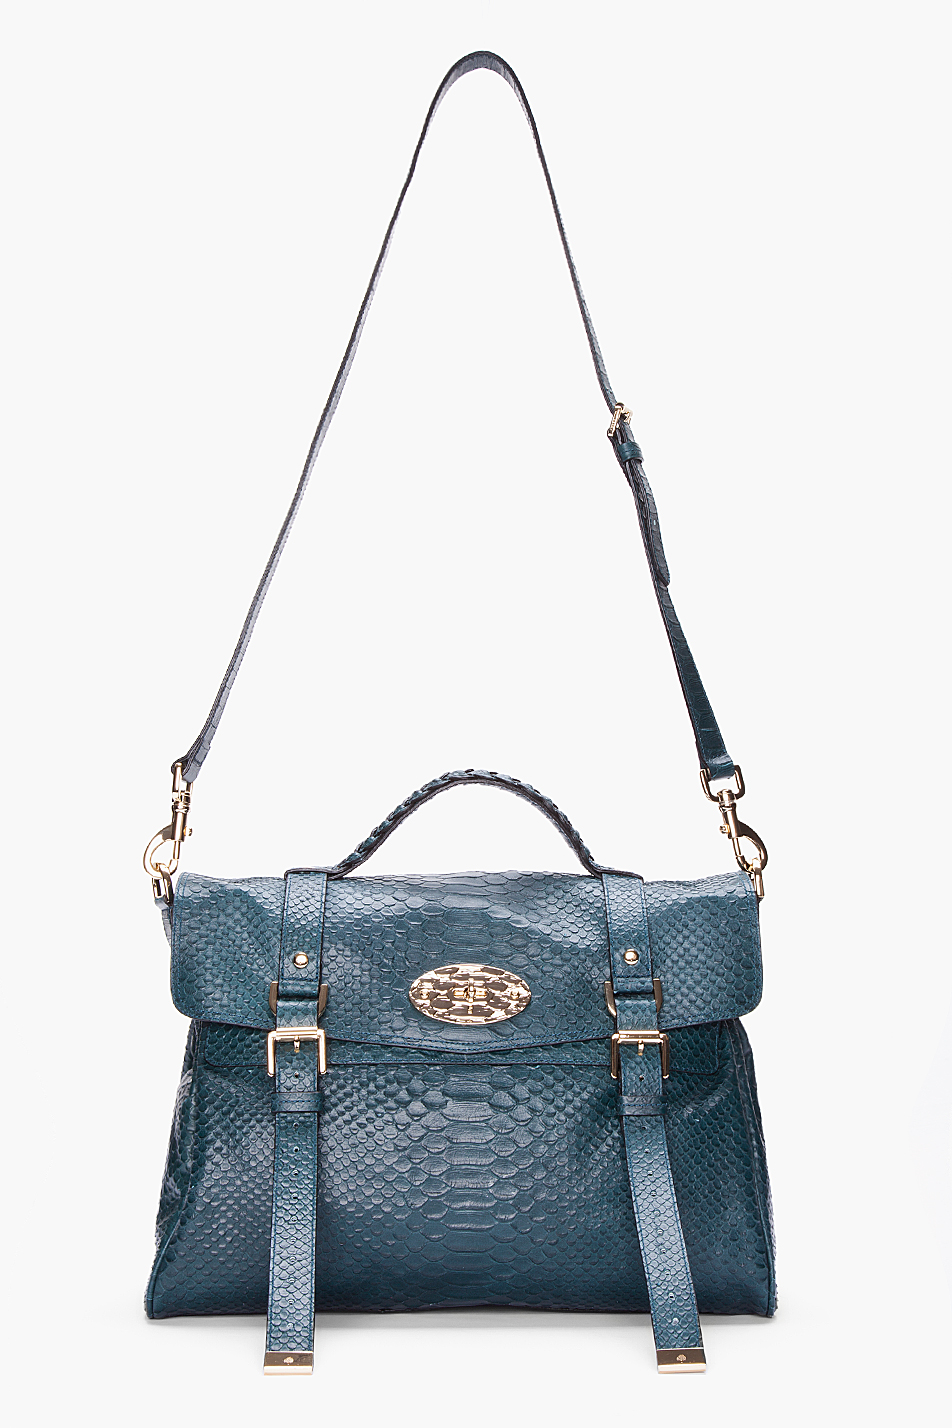 5384853a52 Lyst - Mulberry Oversized Alexa Silky Snake Print Bag in Blue